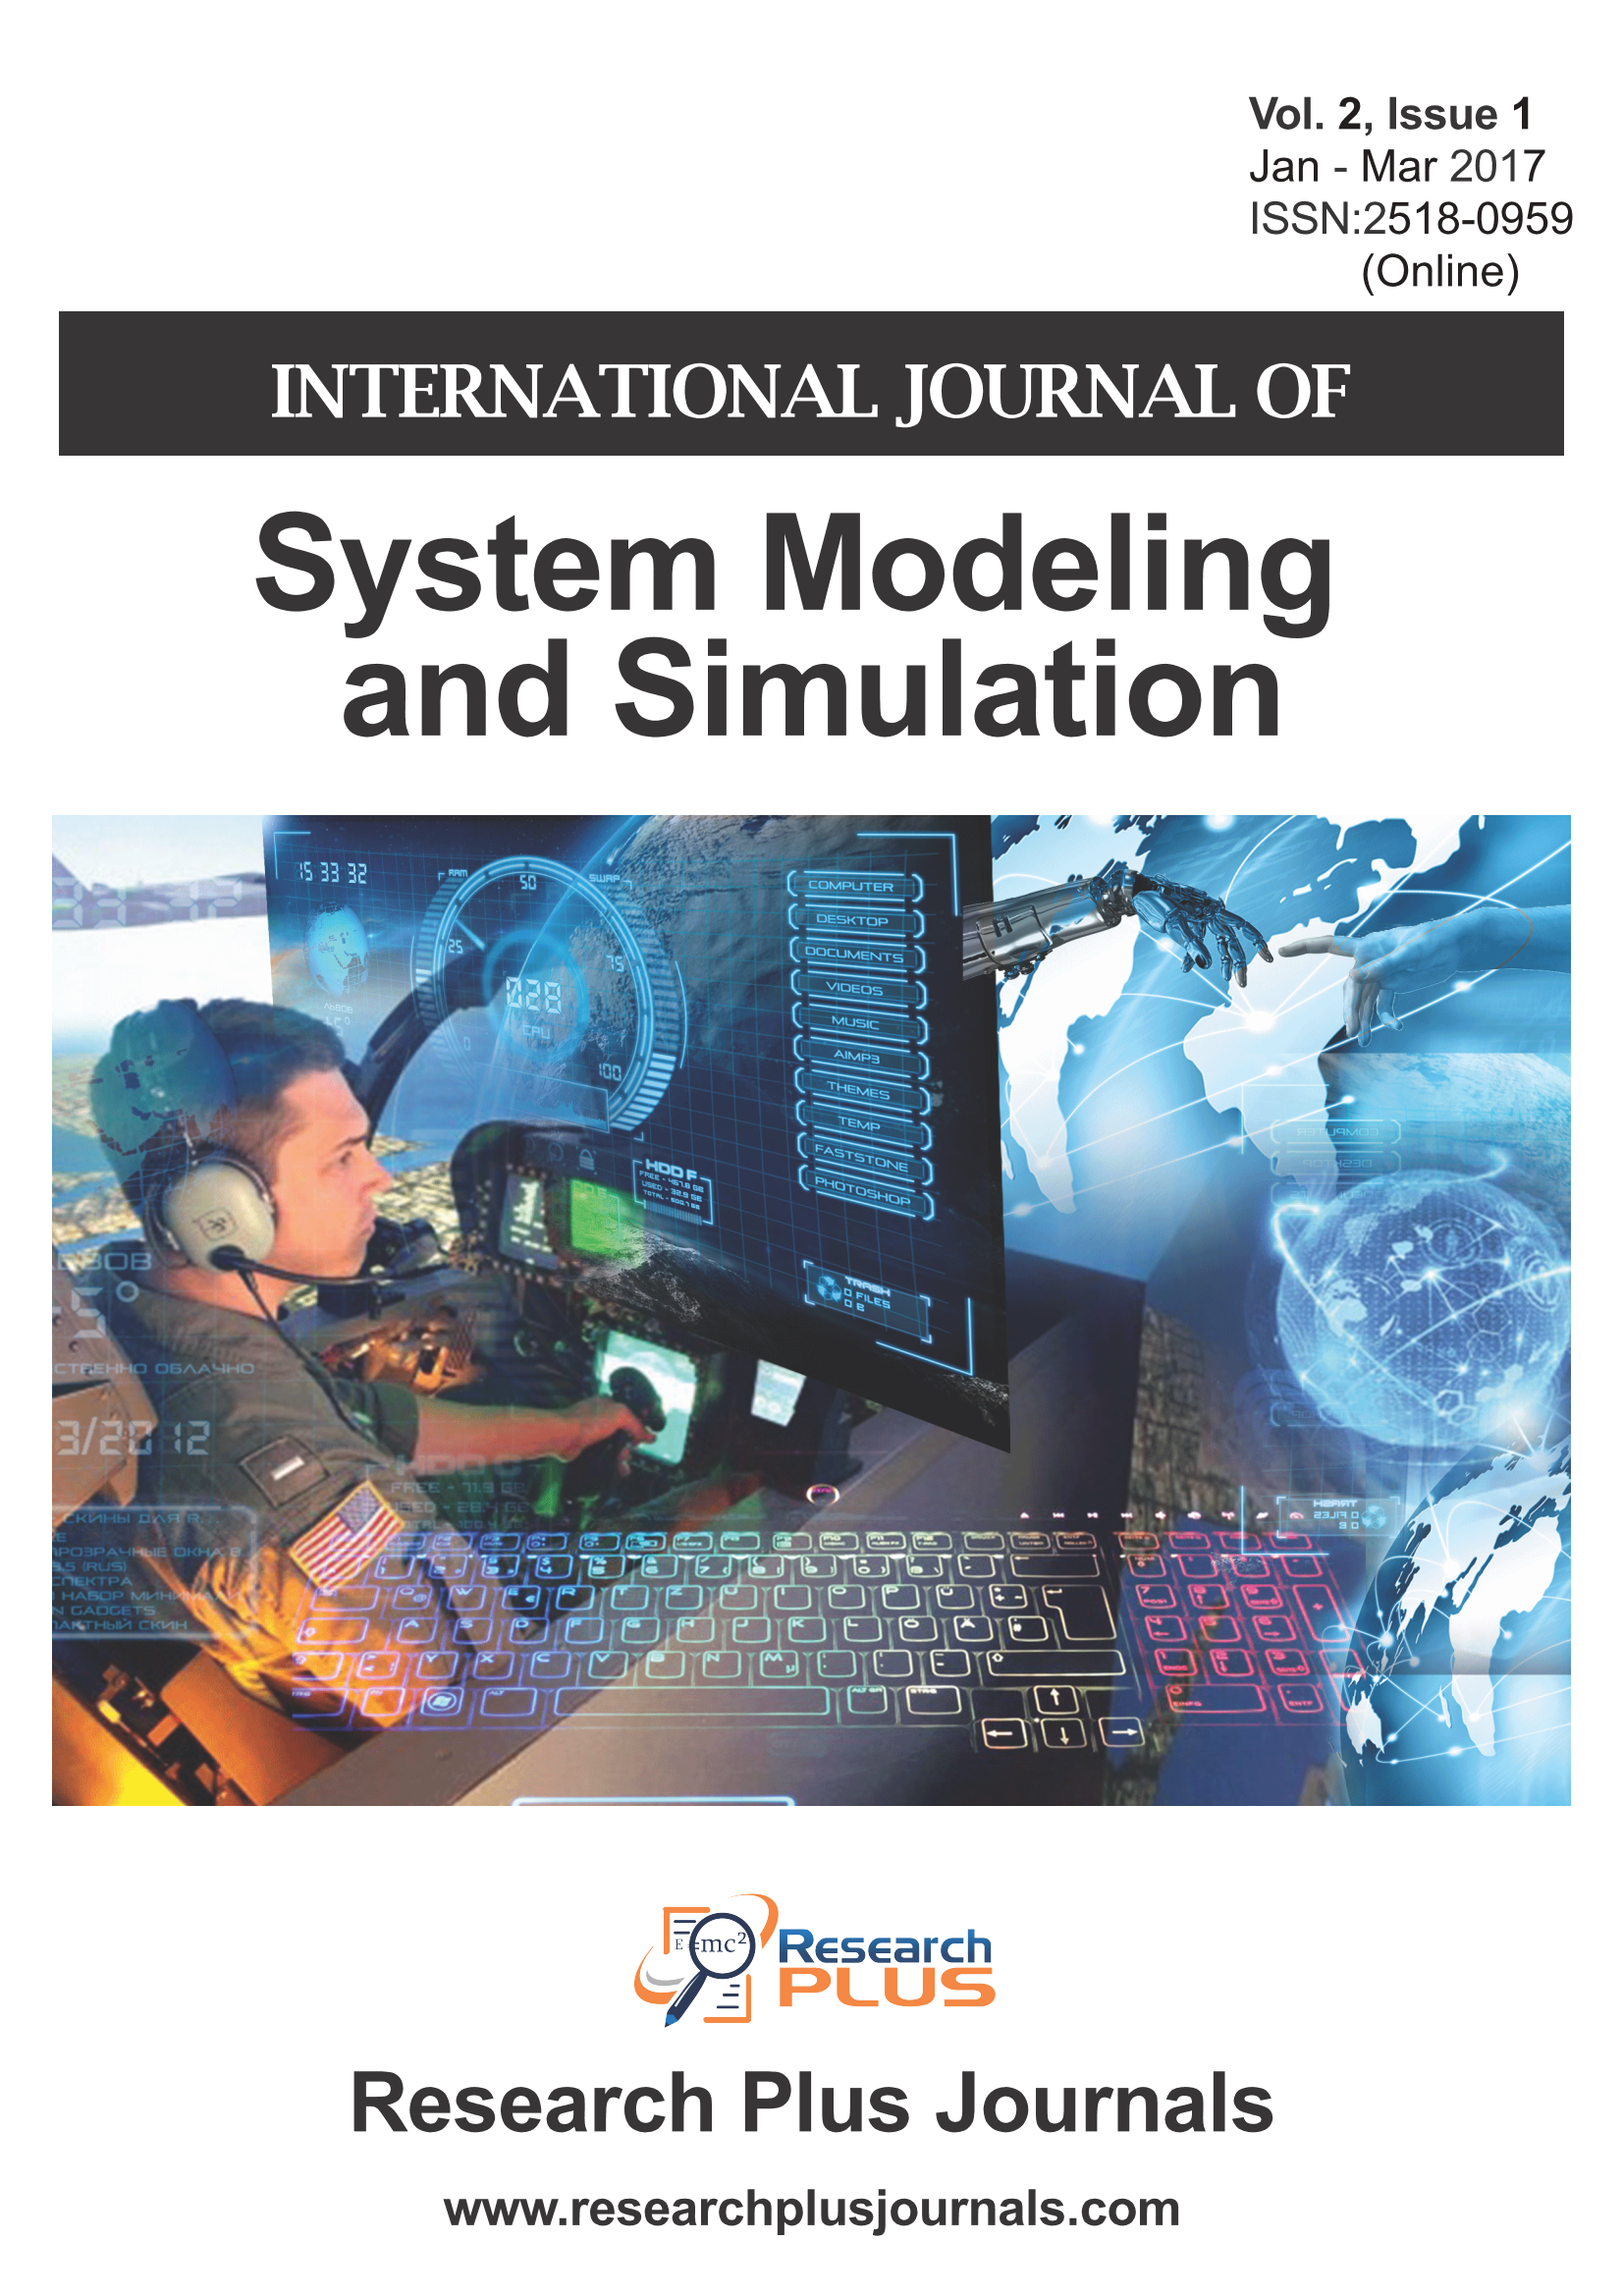 International Journal of System Modeling and Simulation (ISSN Online: 2518-0959) - Vol.2, Issue 1